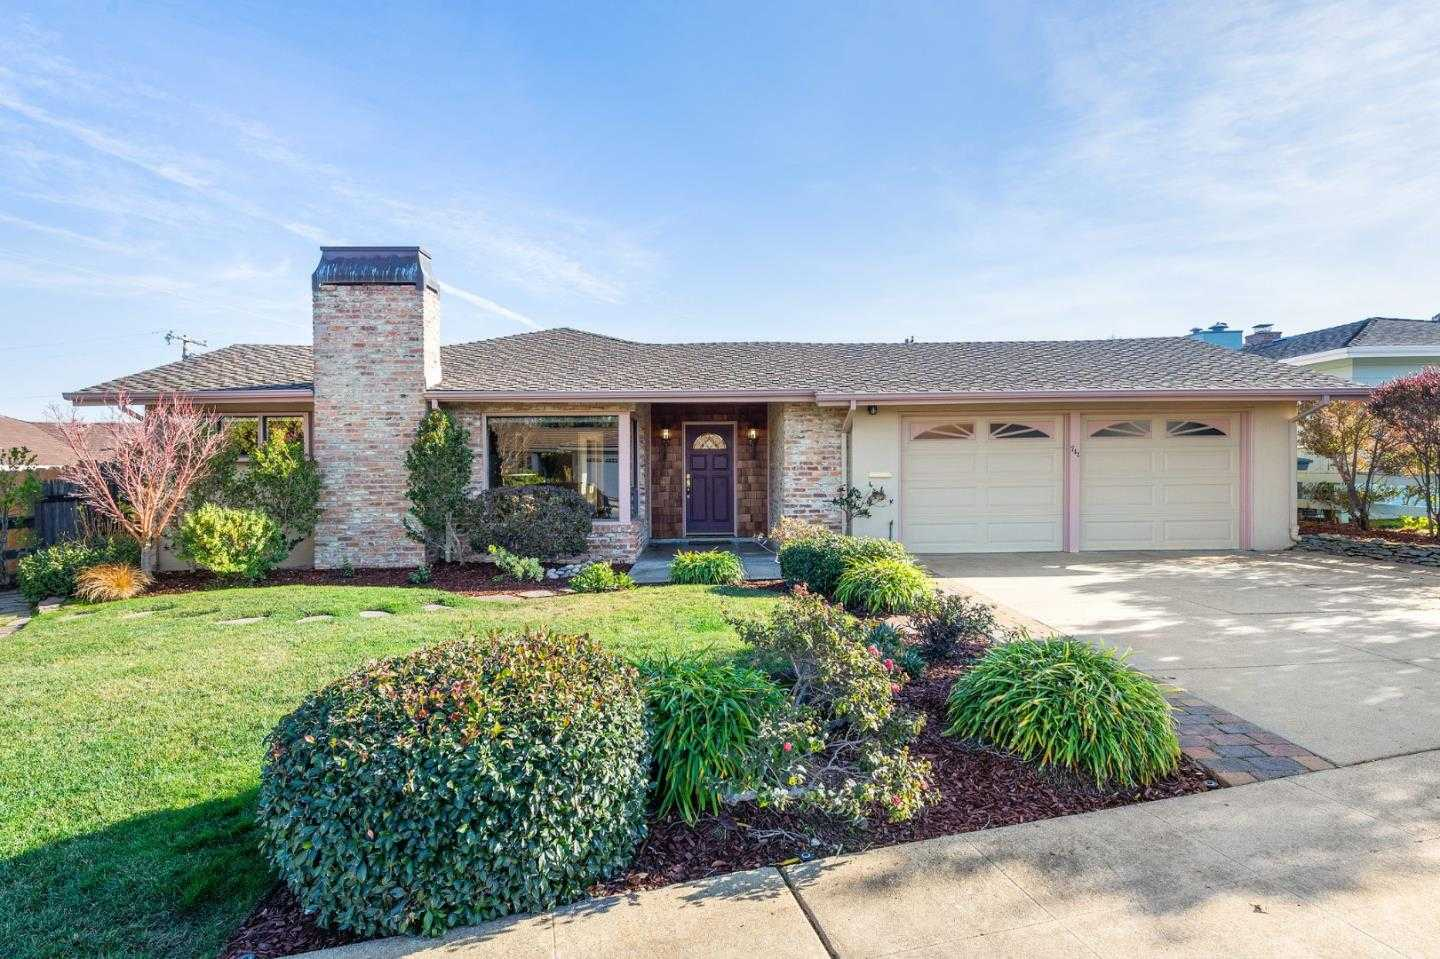 $1,995,000 - 3Br/2Ba -  for Sale in San Mateo